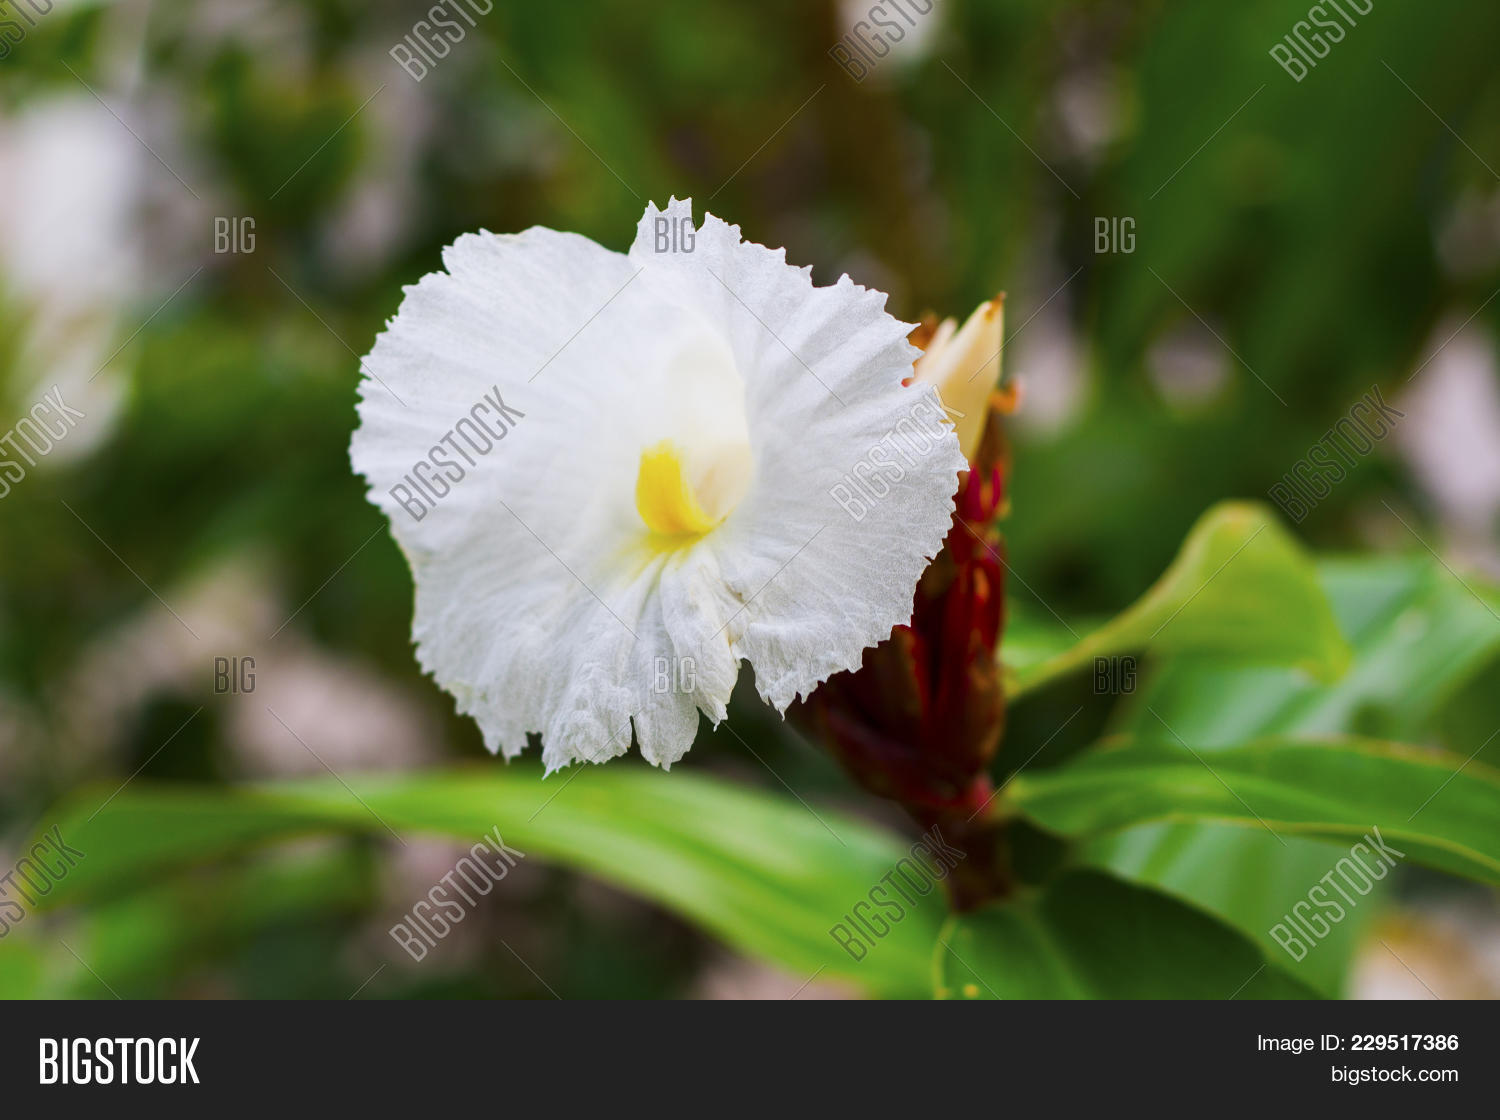 White Tropical Flower On Green Branch With Buds White Flower On